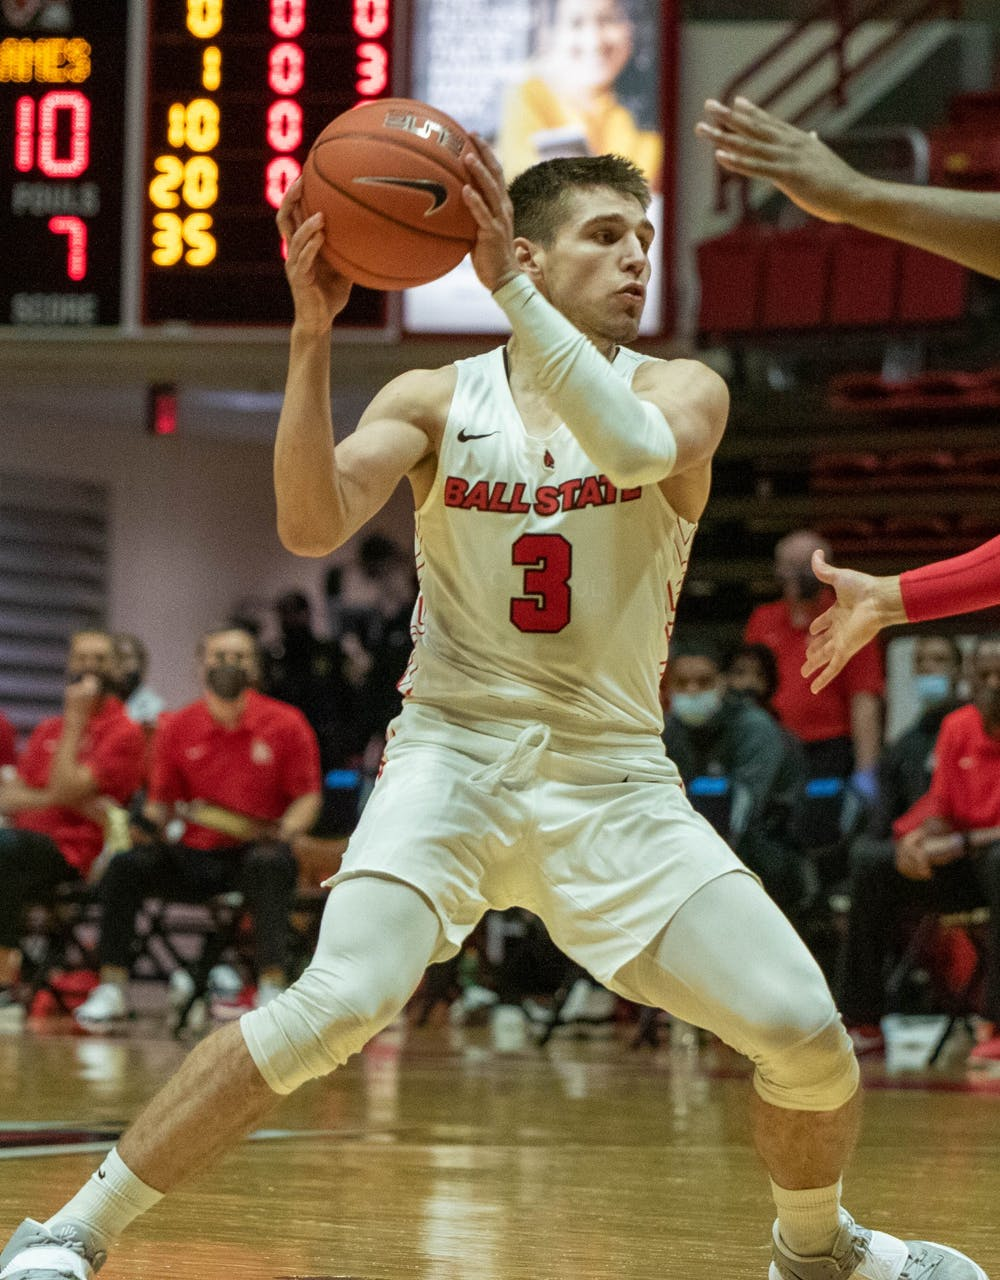 <p>Freshman guard Teemu Suokas holds the ball  Dec. 5, 2020, in Worthen Arena. Suokas had one rebound against the Flames. <strong>Jaden Whiteman, DN</strong></p>